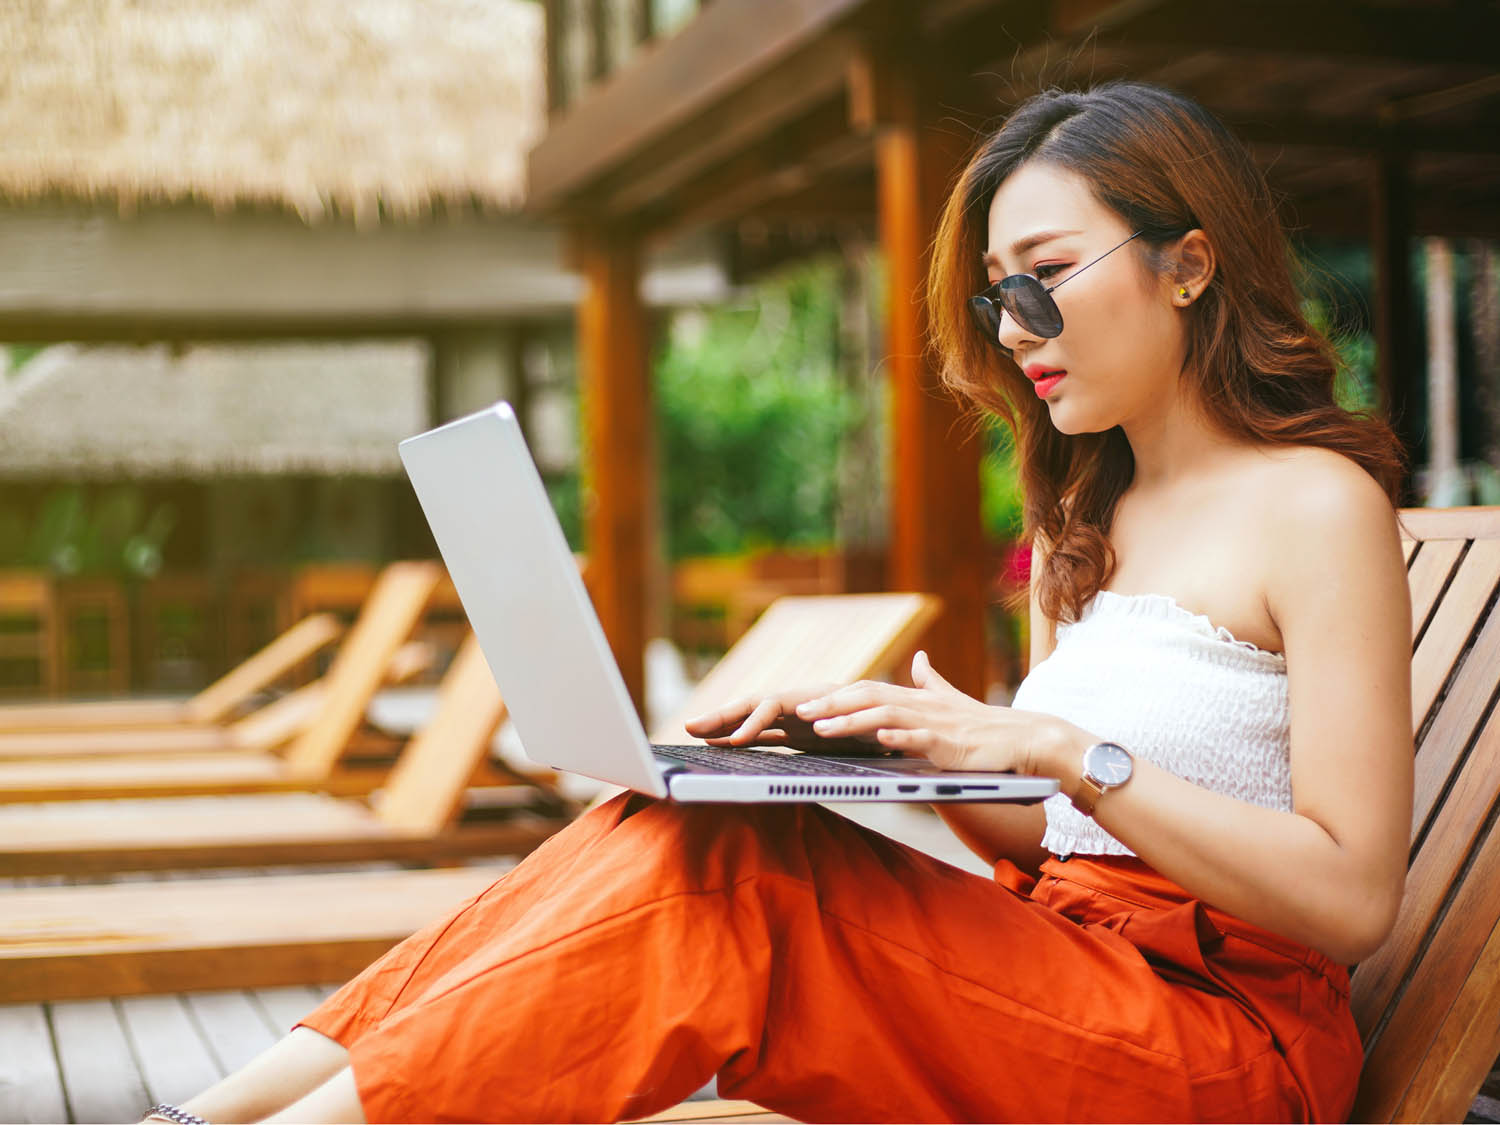 Being able to control and track your banking account from anywhere can help you understand how you spend money. Learn how you can find the best online banking!